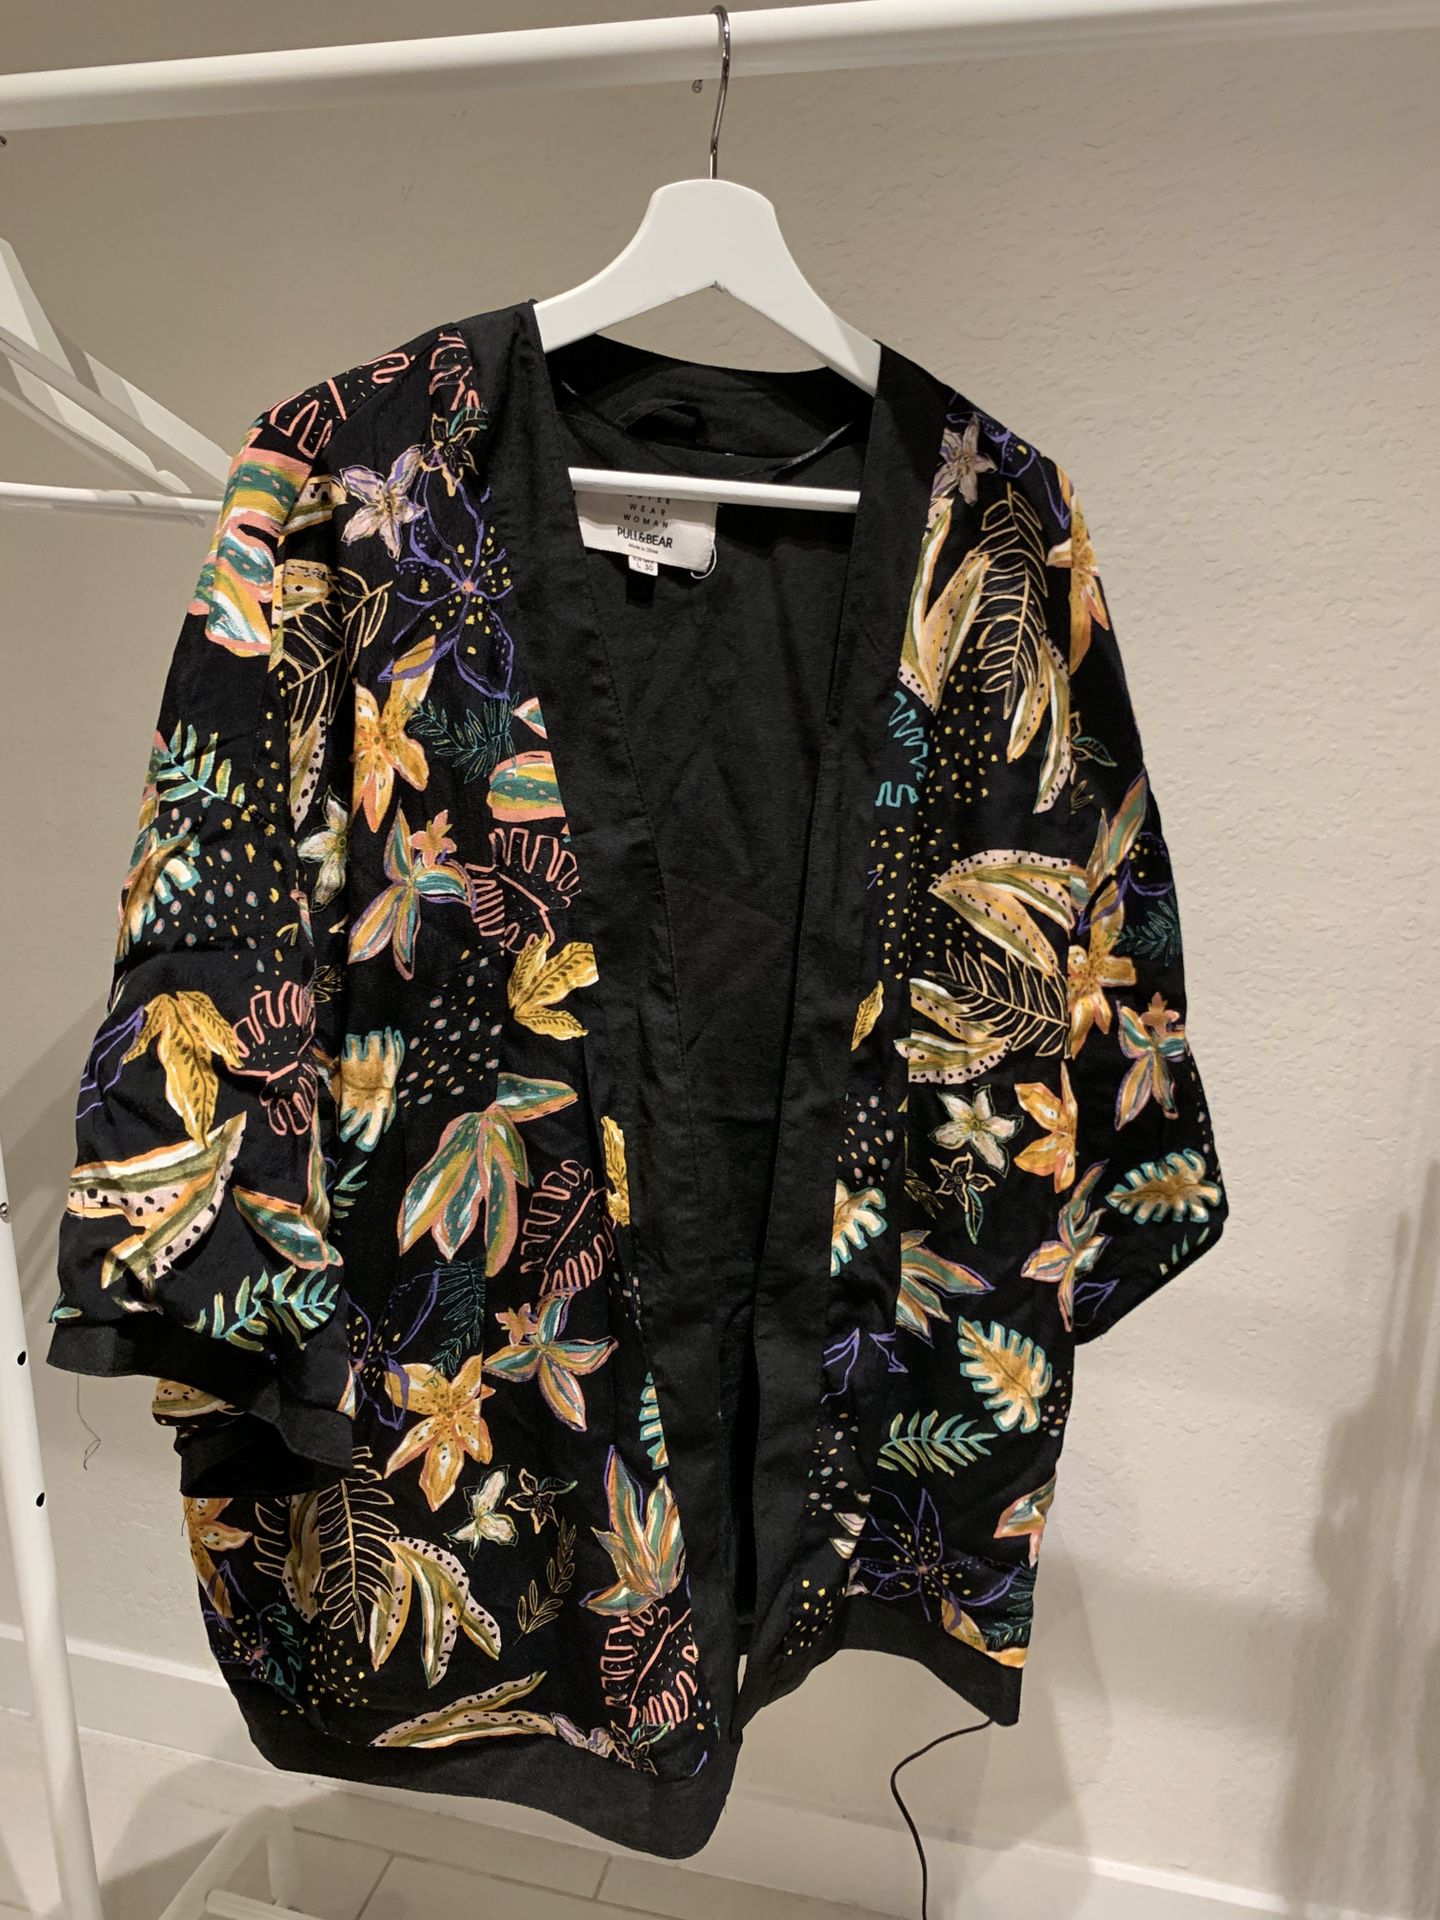 Coat for women size M or L